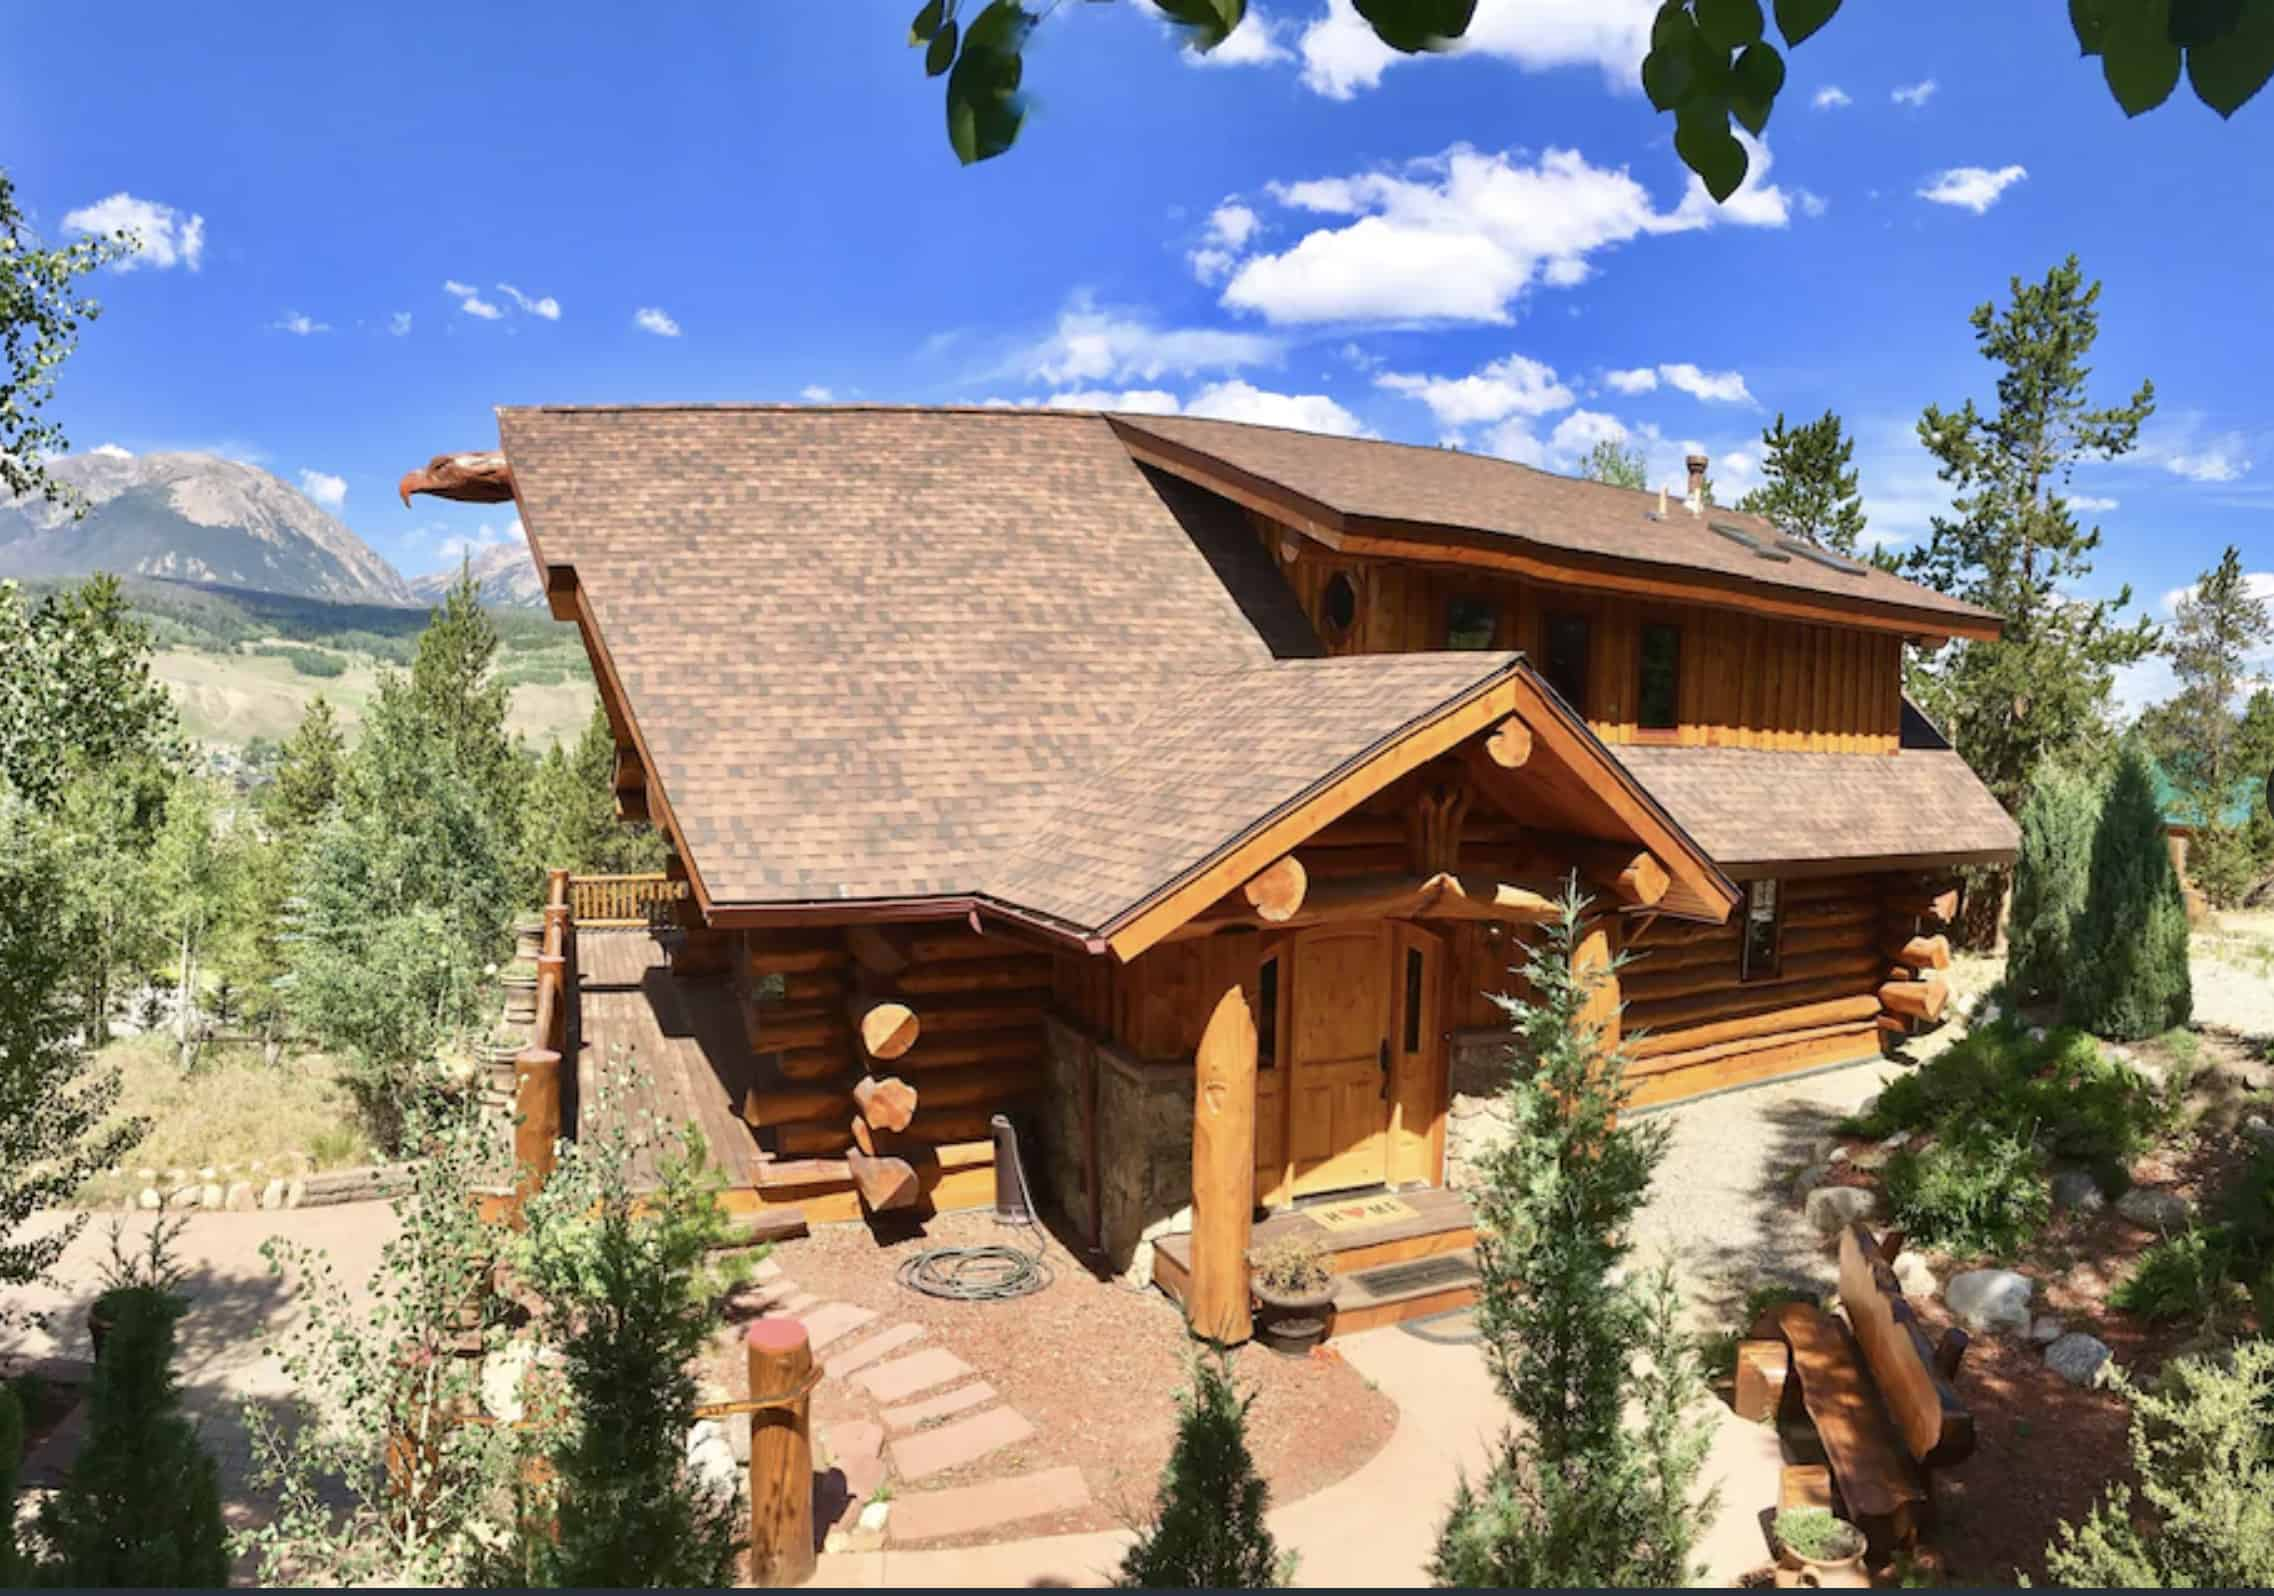 airbnb wedding venue Colorado a wooden cabin rental home with the view of summit county mountains in the background